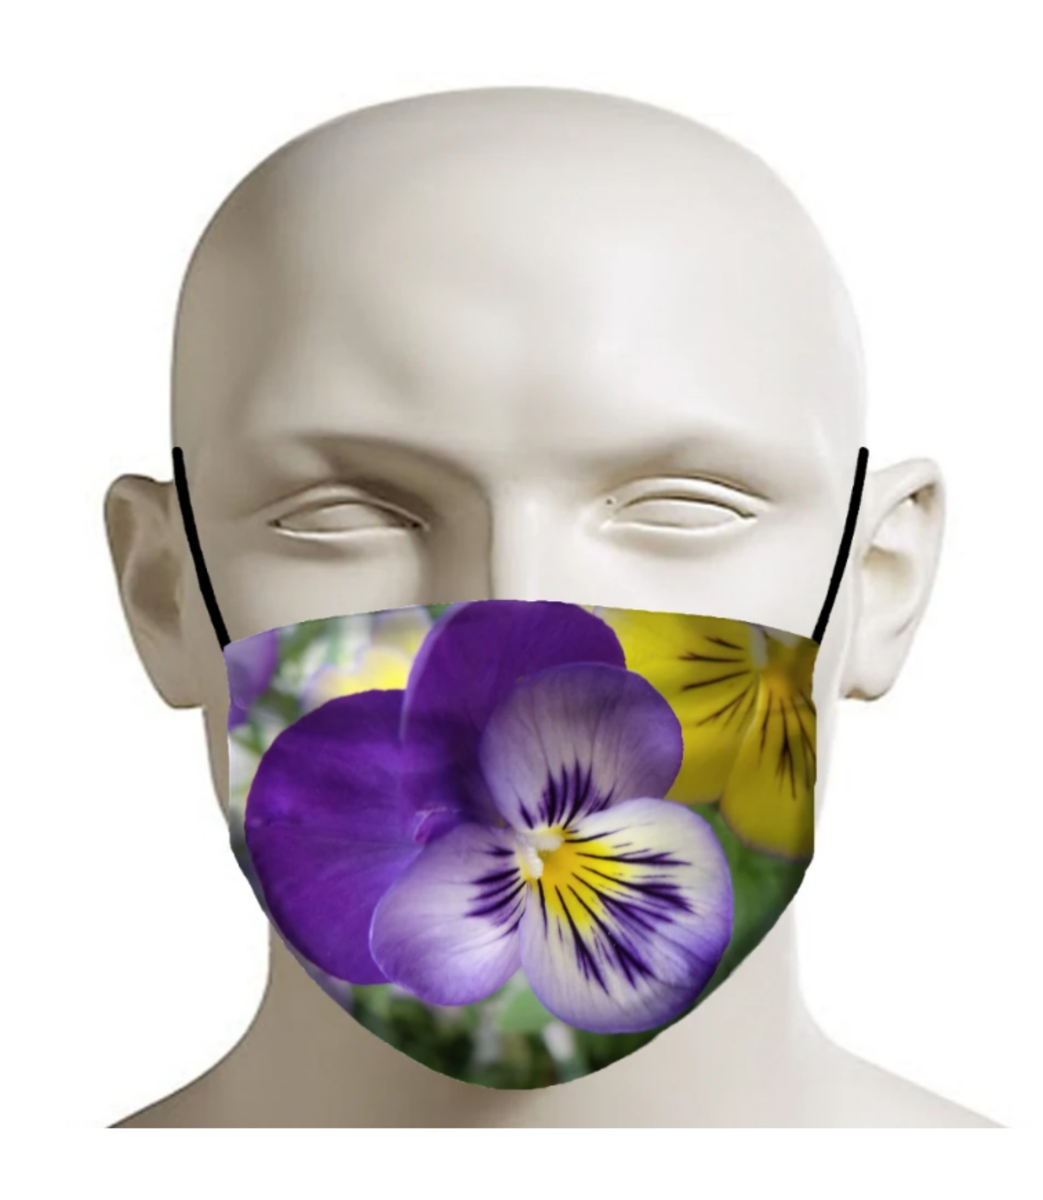 Purple Violet Face Mask. Available at Inked Shop.